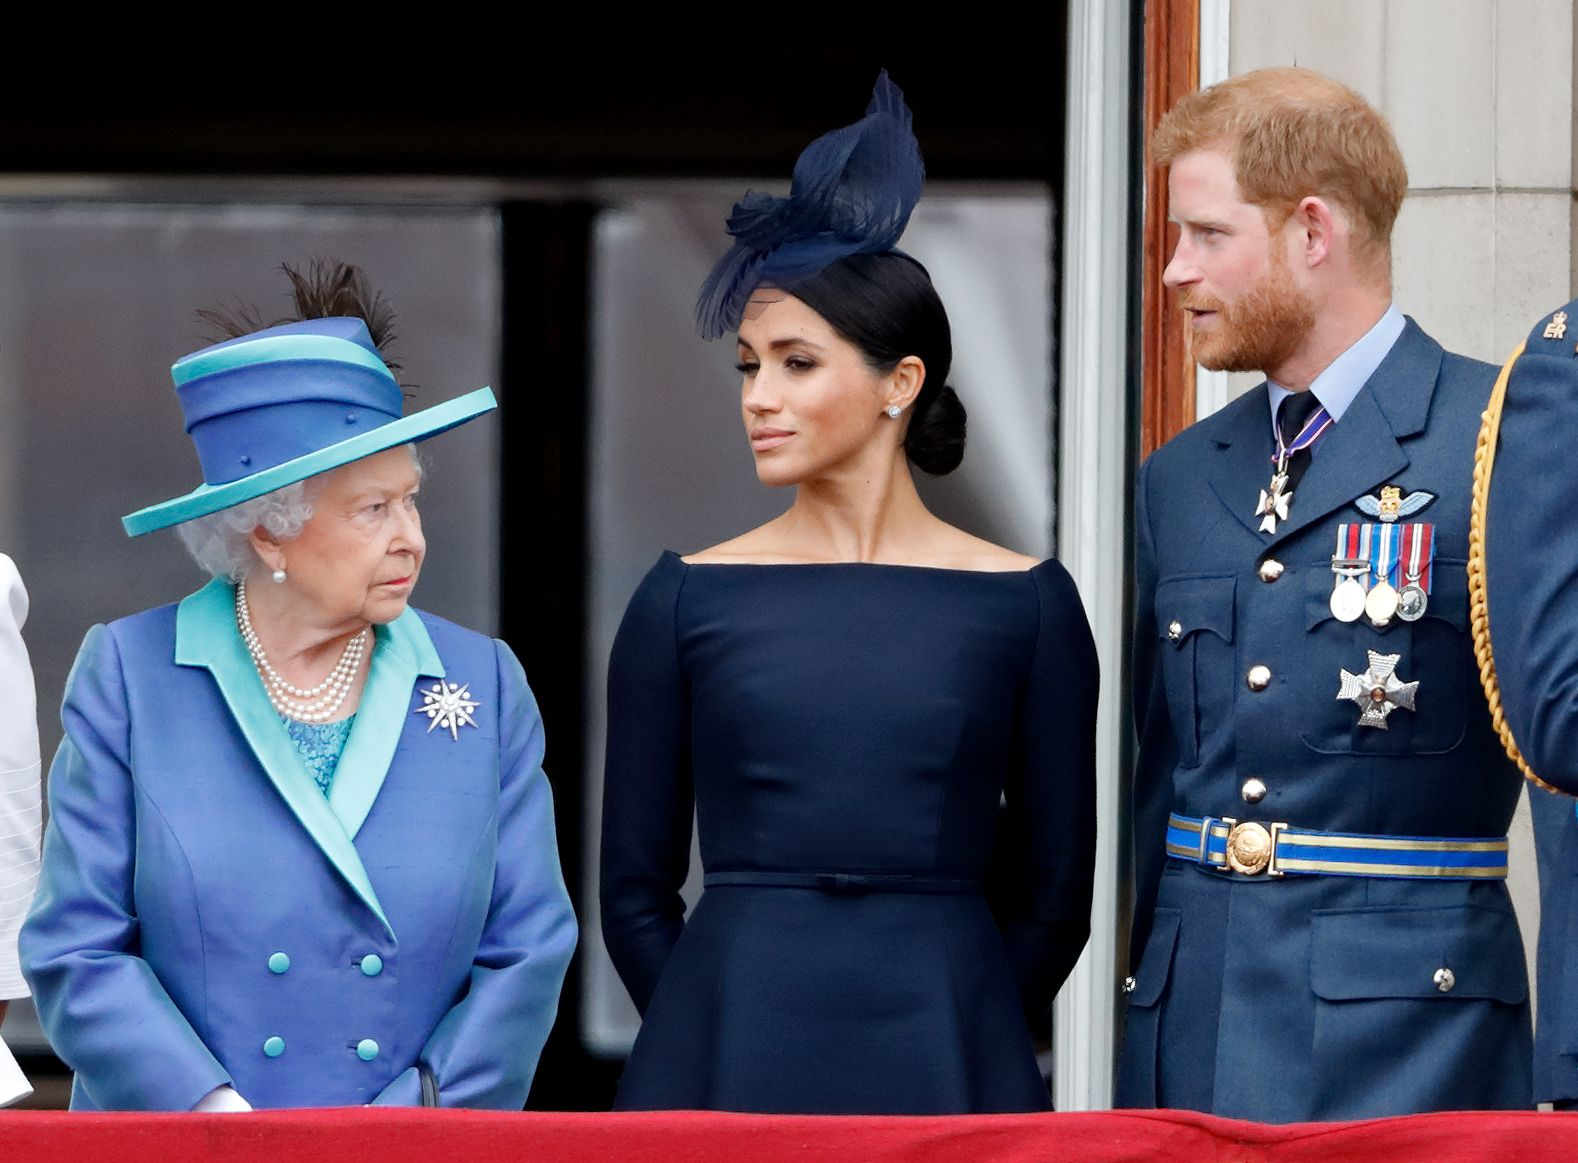 Prince Harry and Meghan Markle on Buckingham Palace balcony with the Queen